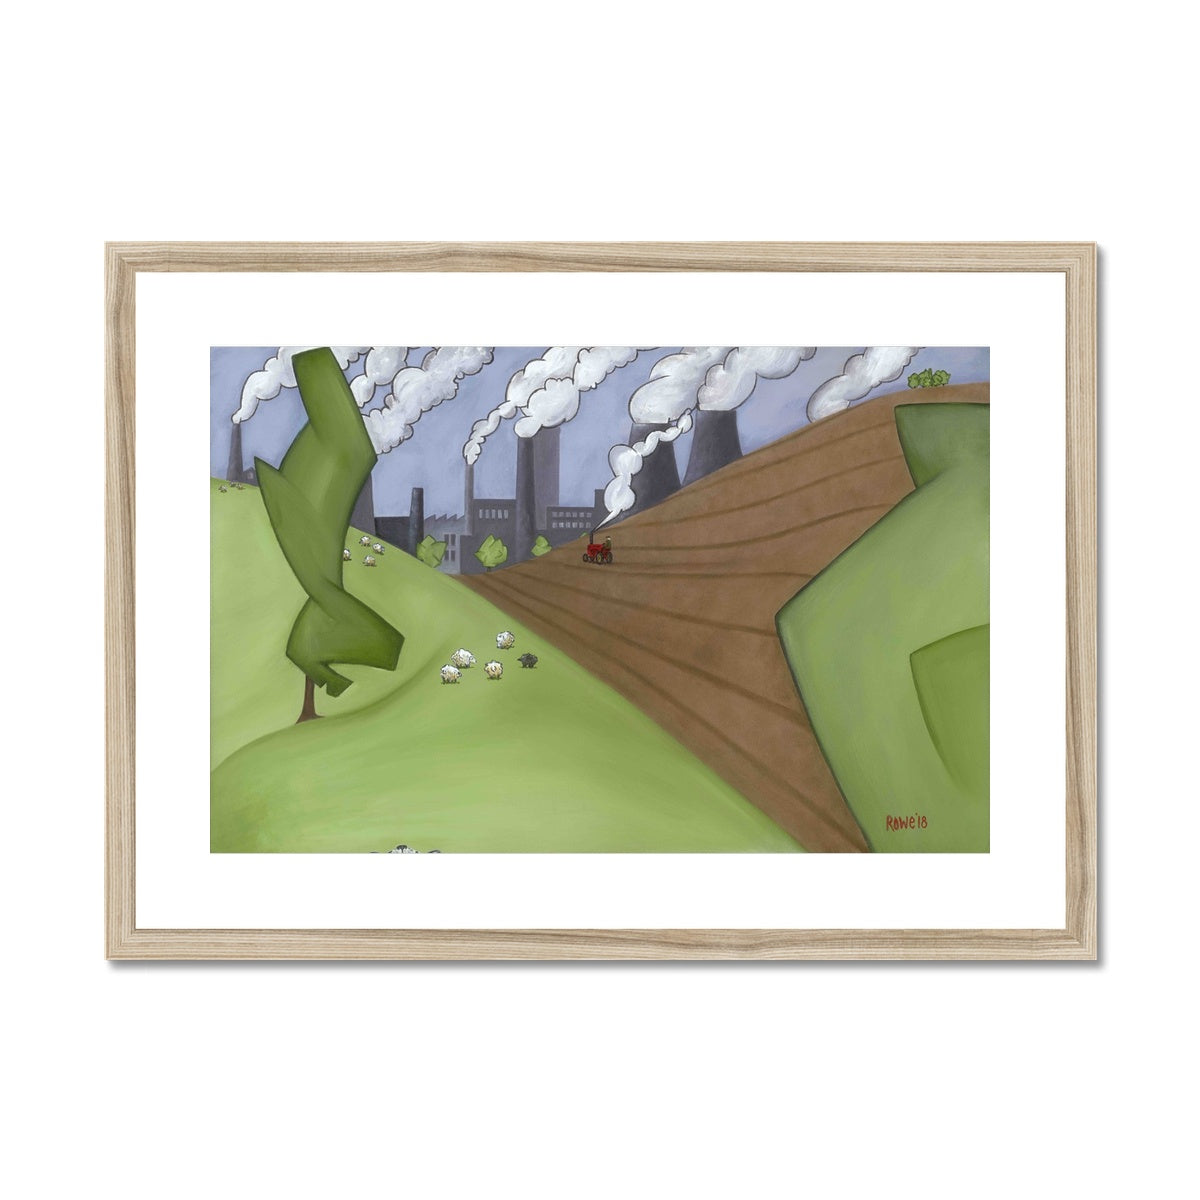 The Farm Framed & Mounted Print